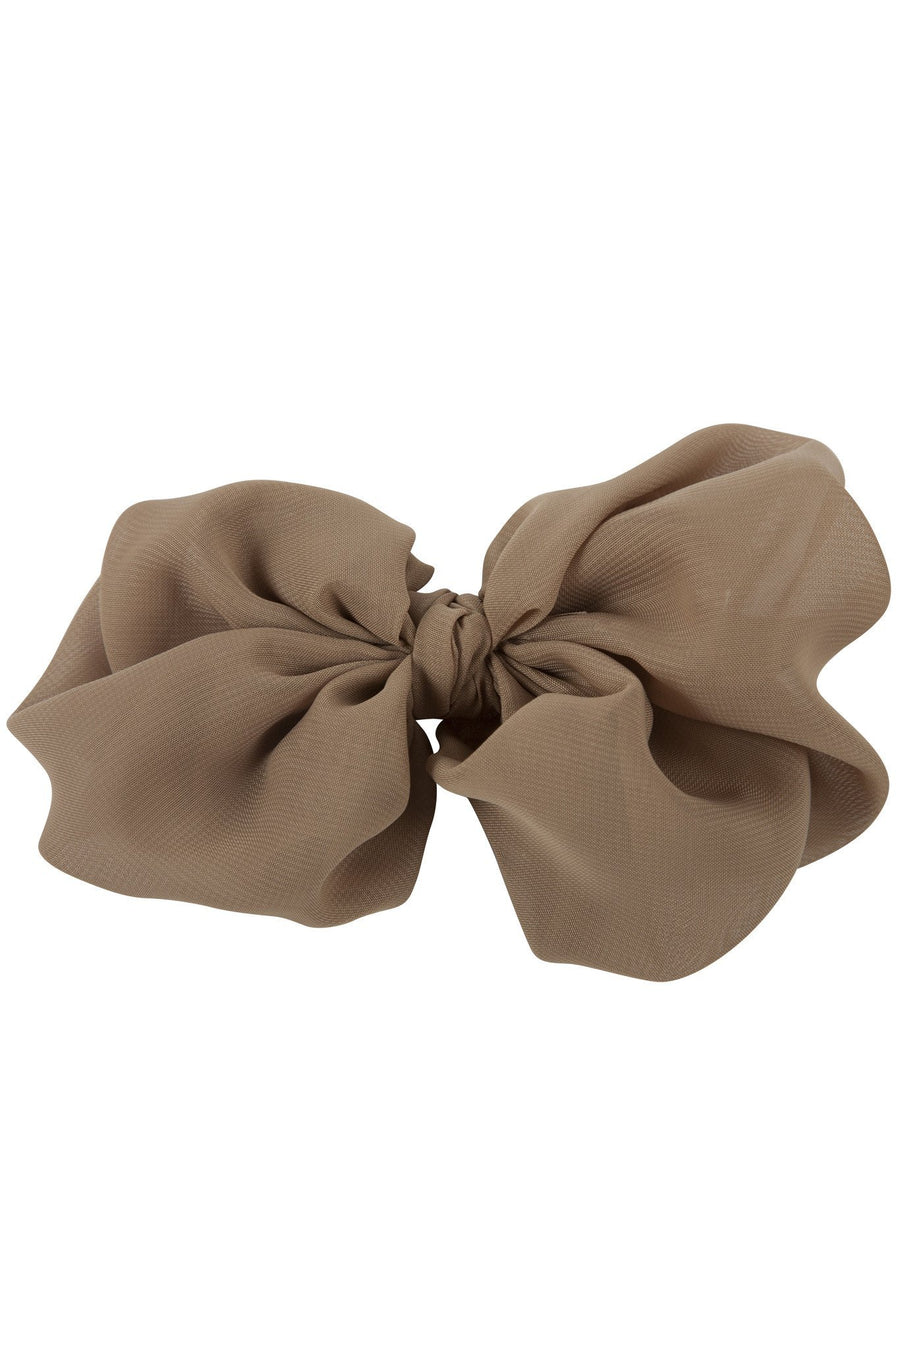 Poppy Clip - Tan - PROJECT 6, modest fashion